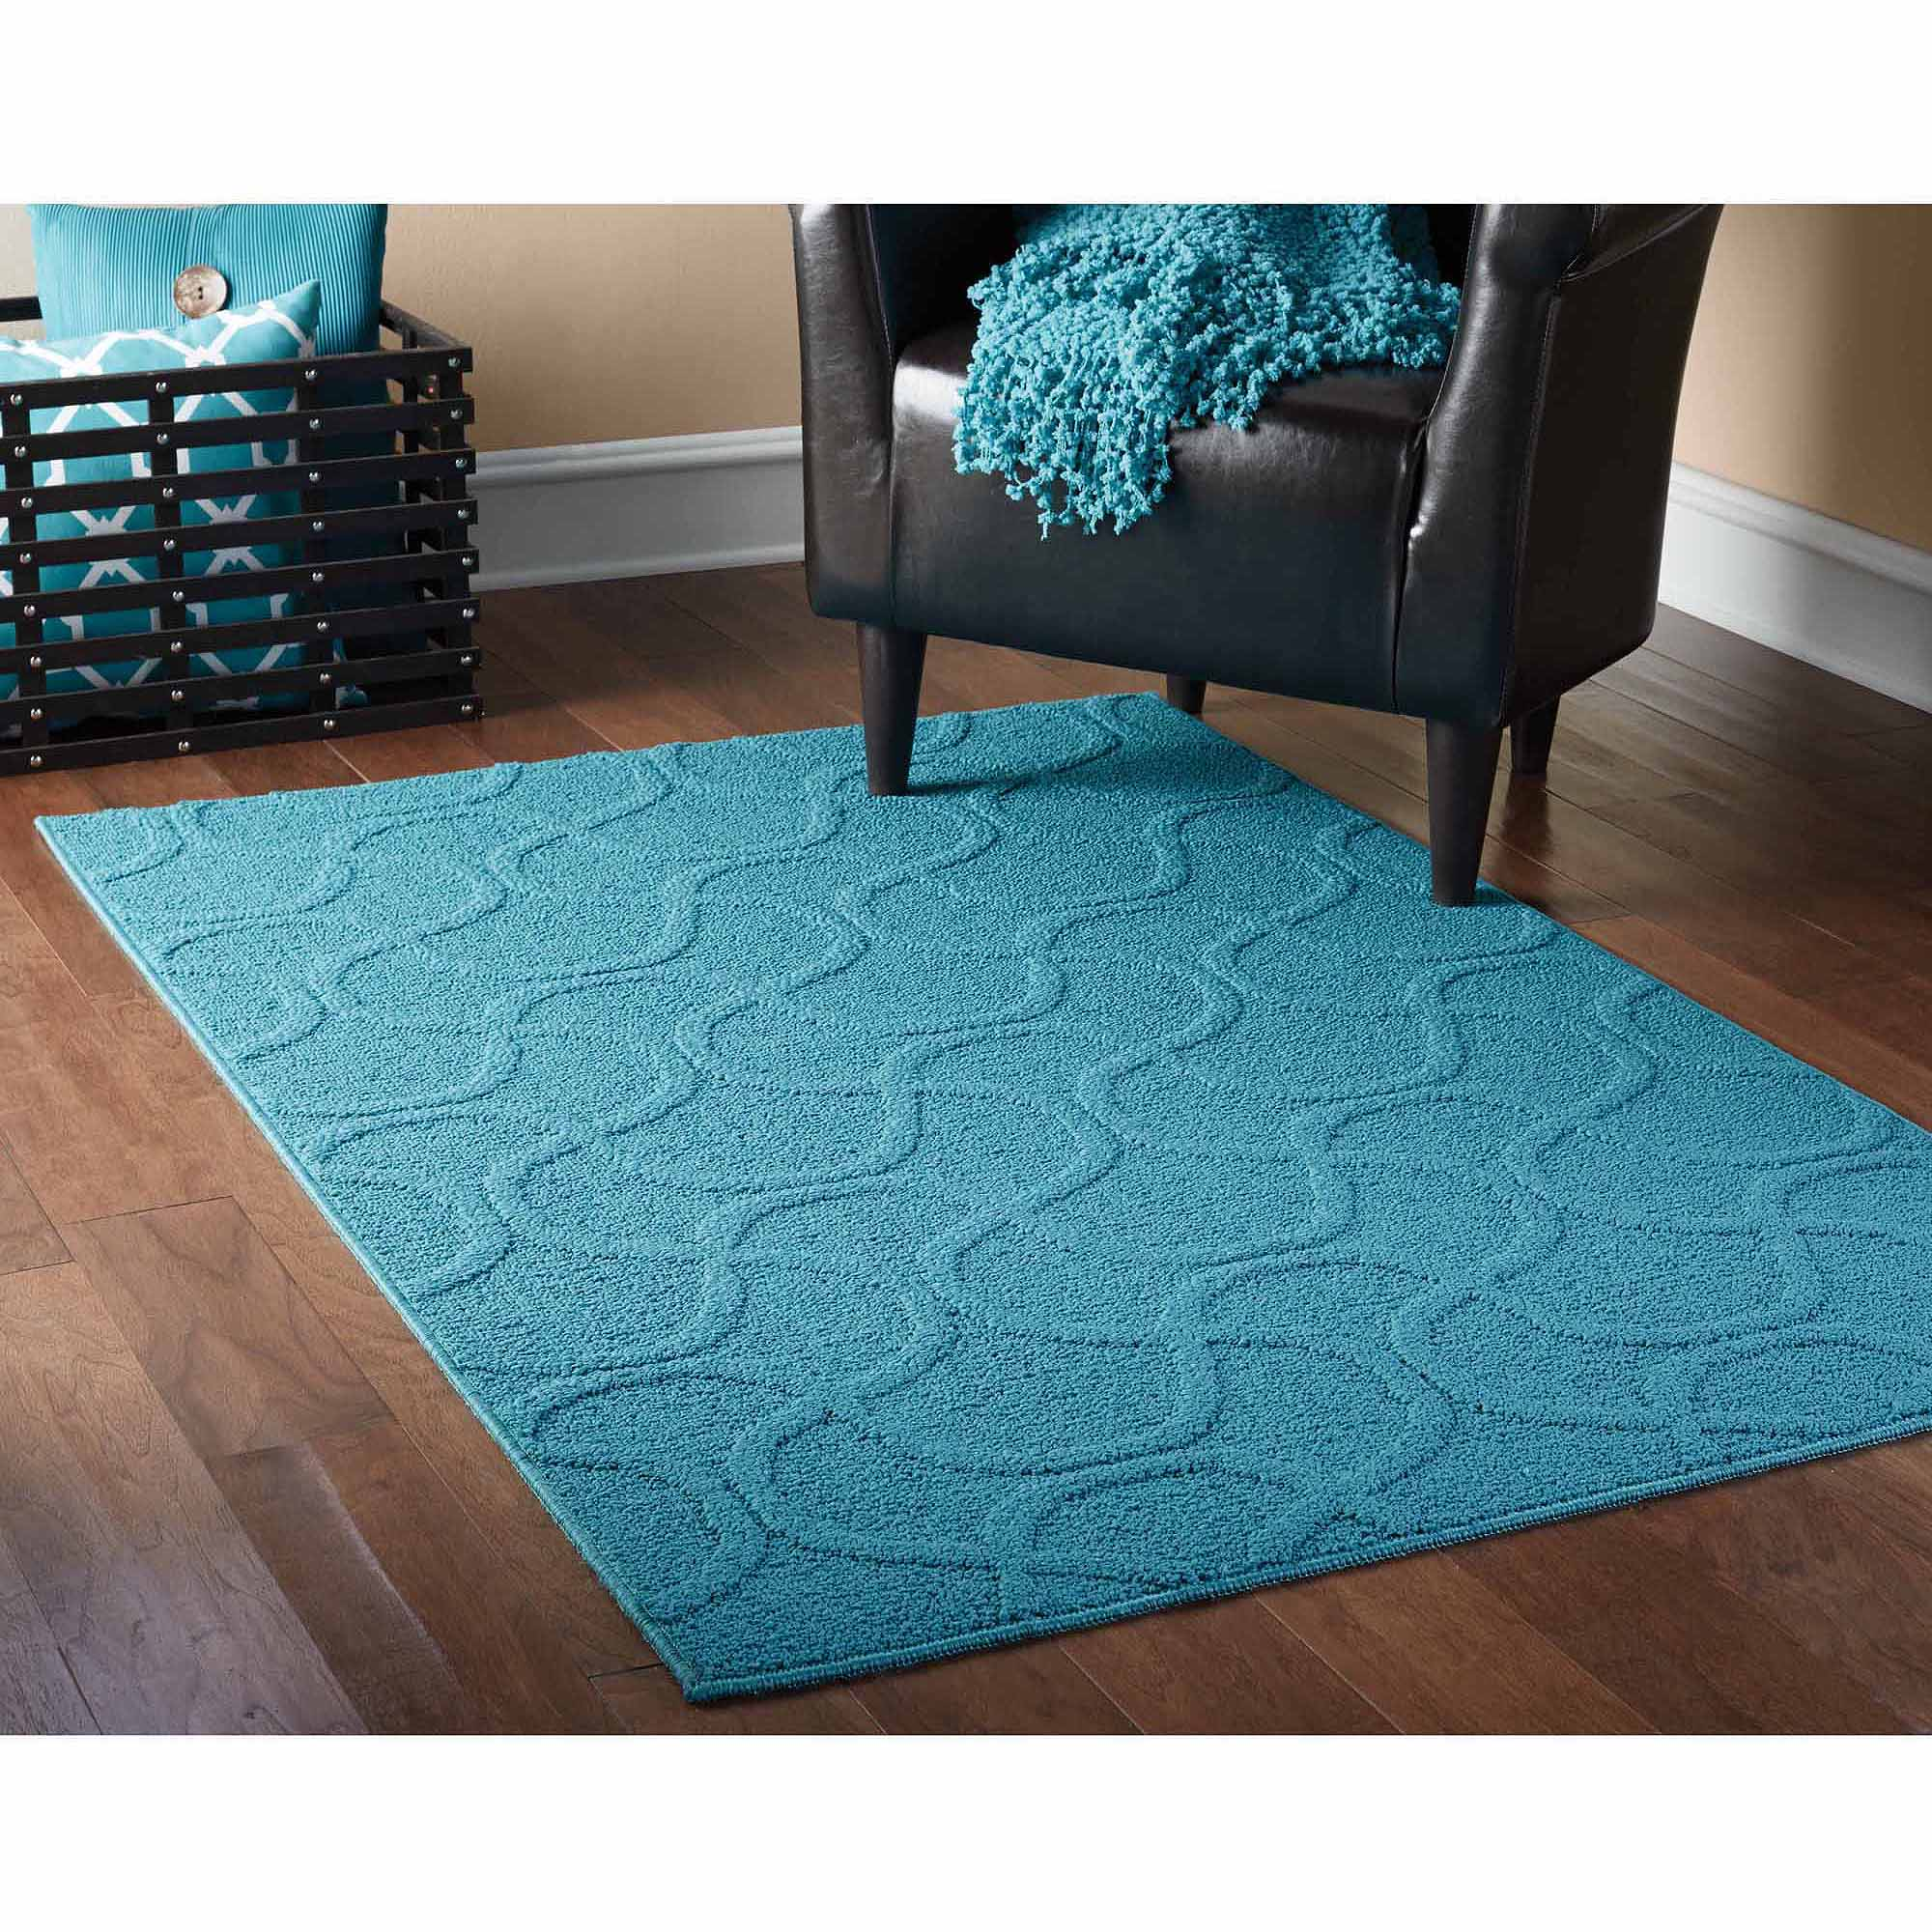 Mainstays Brentwood Collection Drizzle Style Area Rug ...